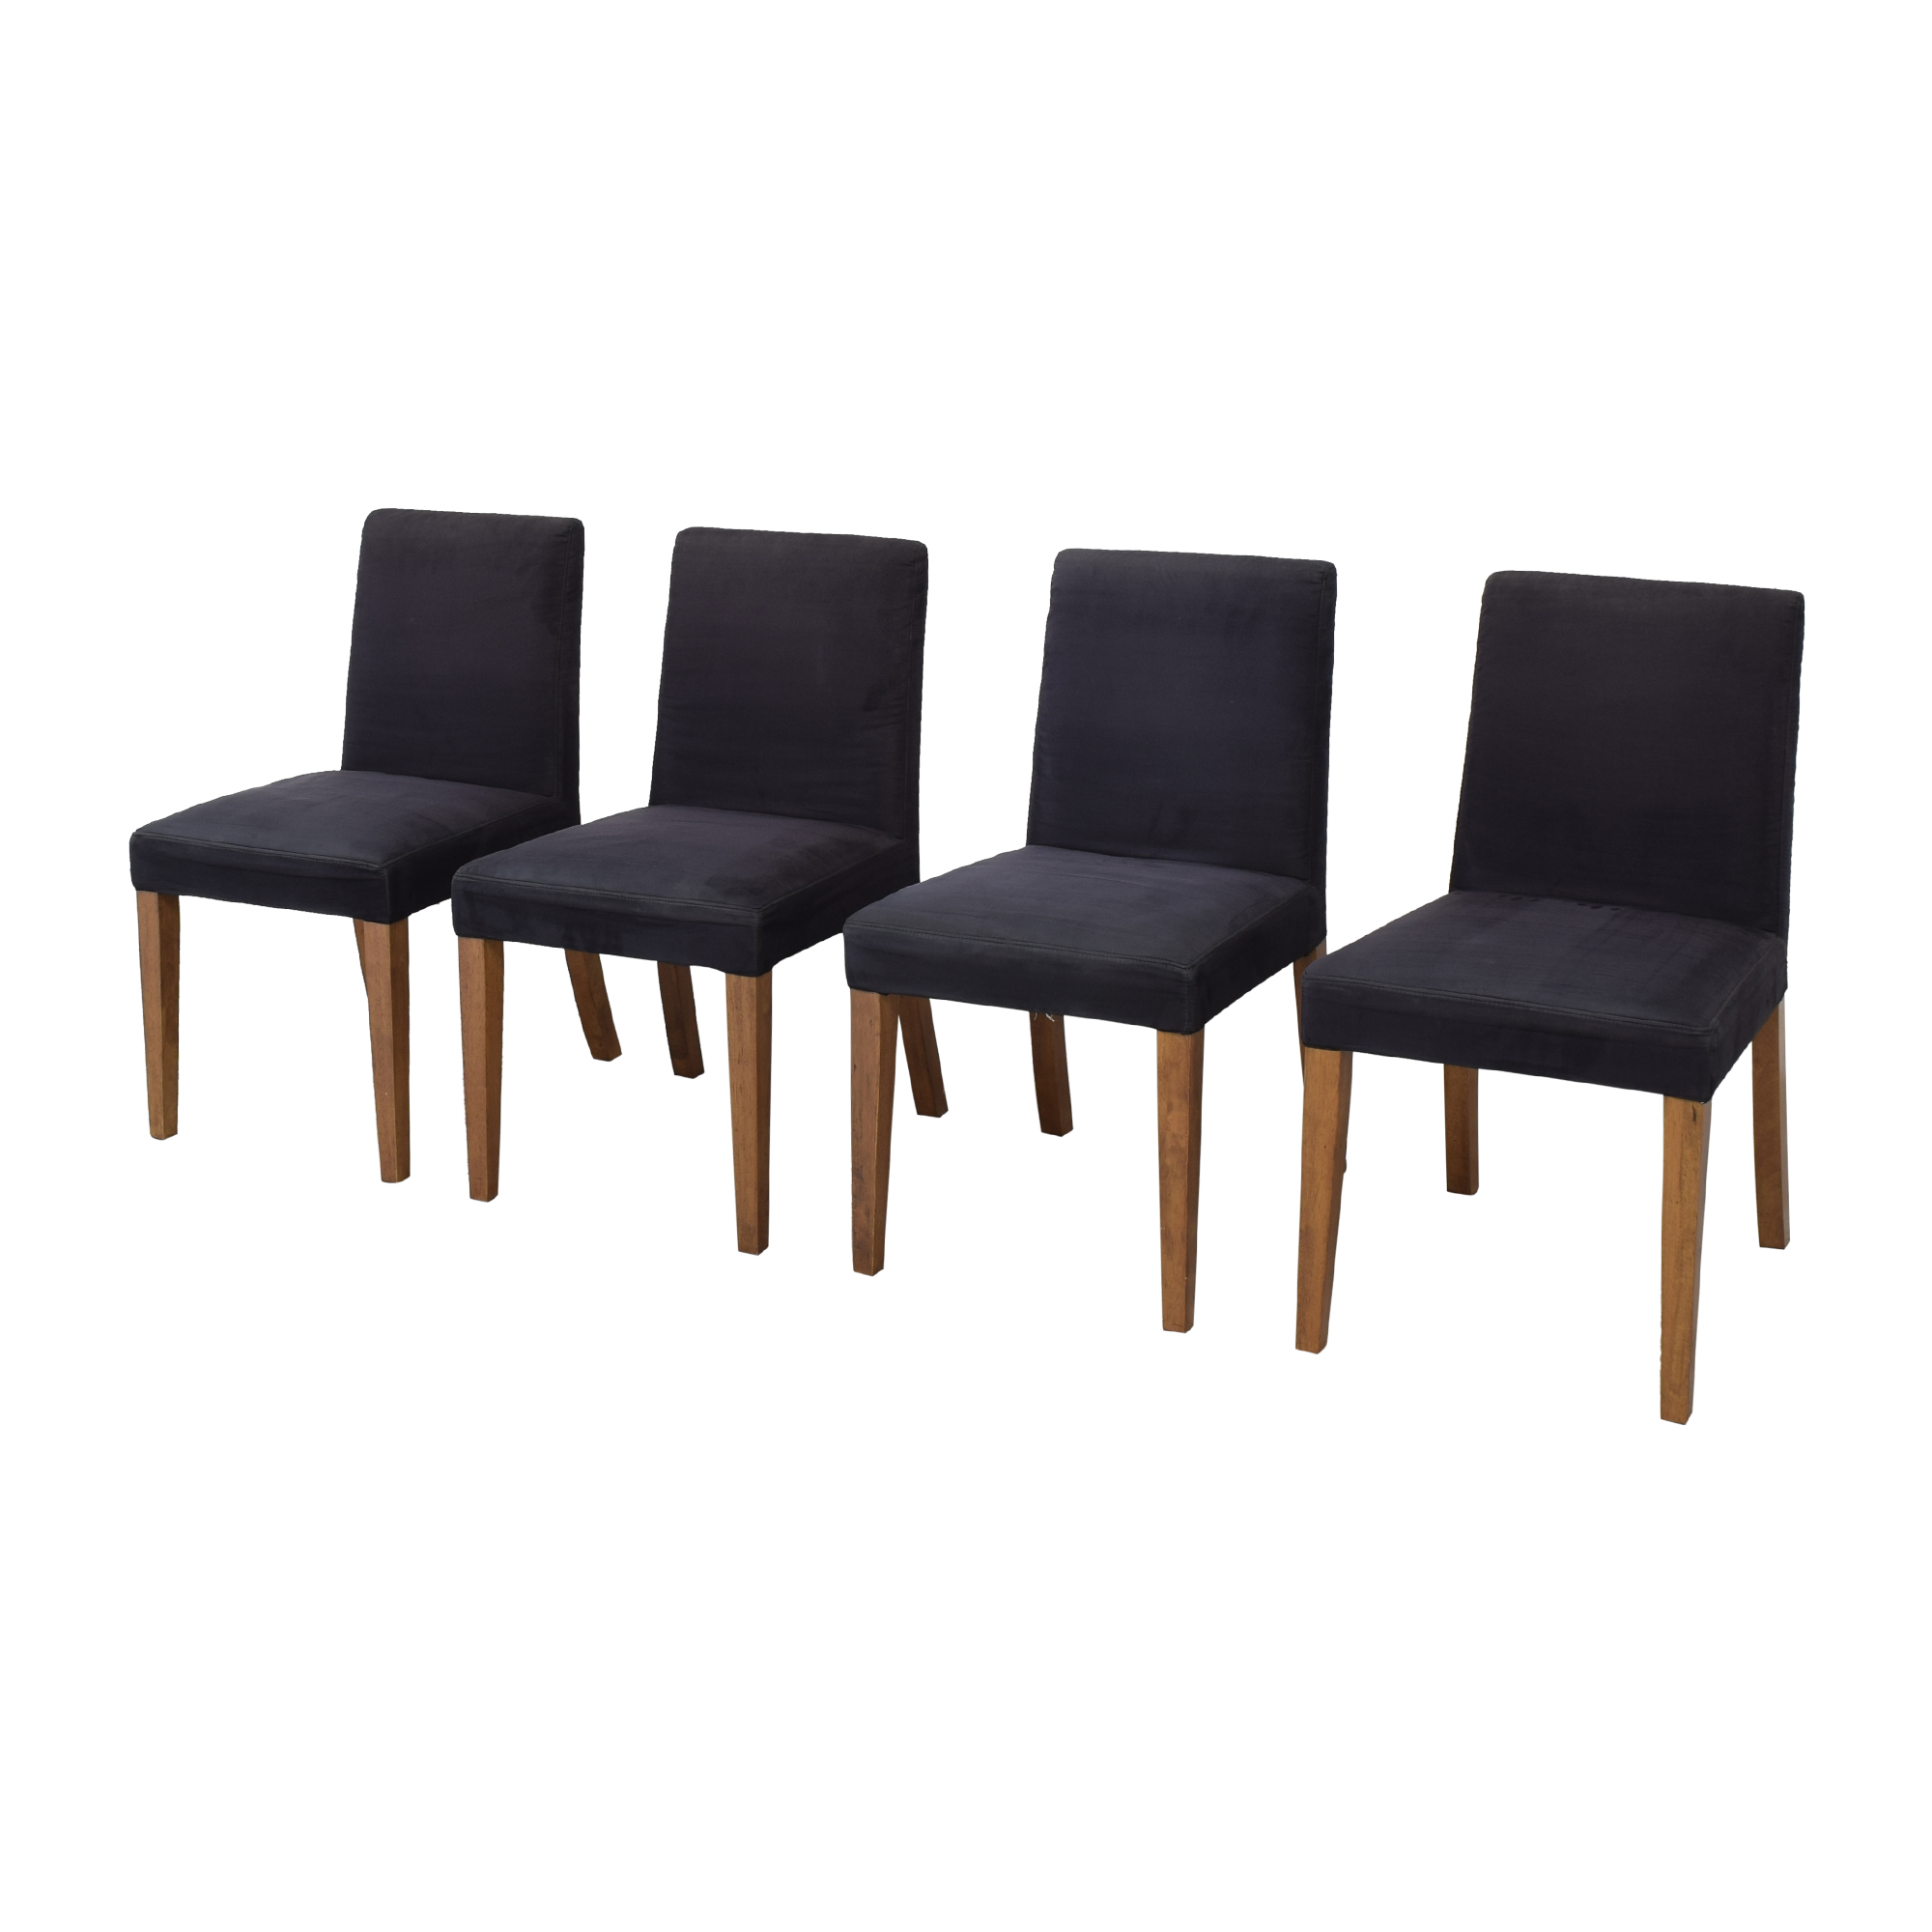 BoConcept BoConcept Cantono Upholstered Chairs coupon